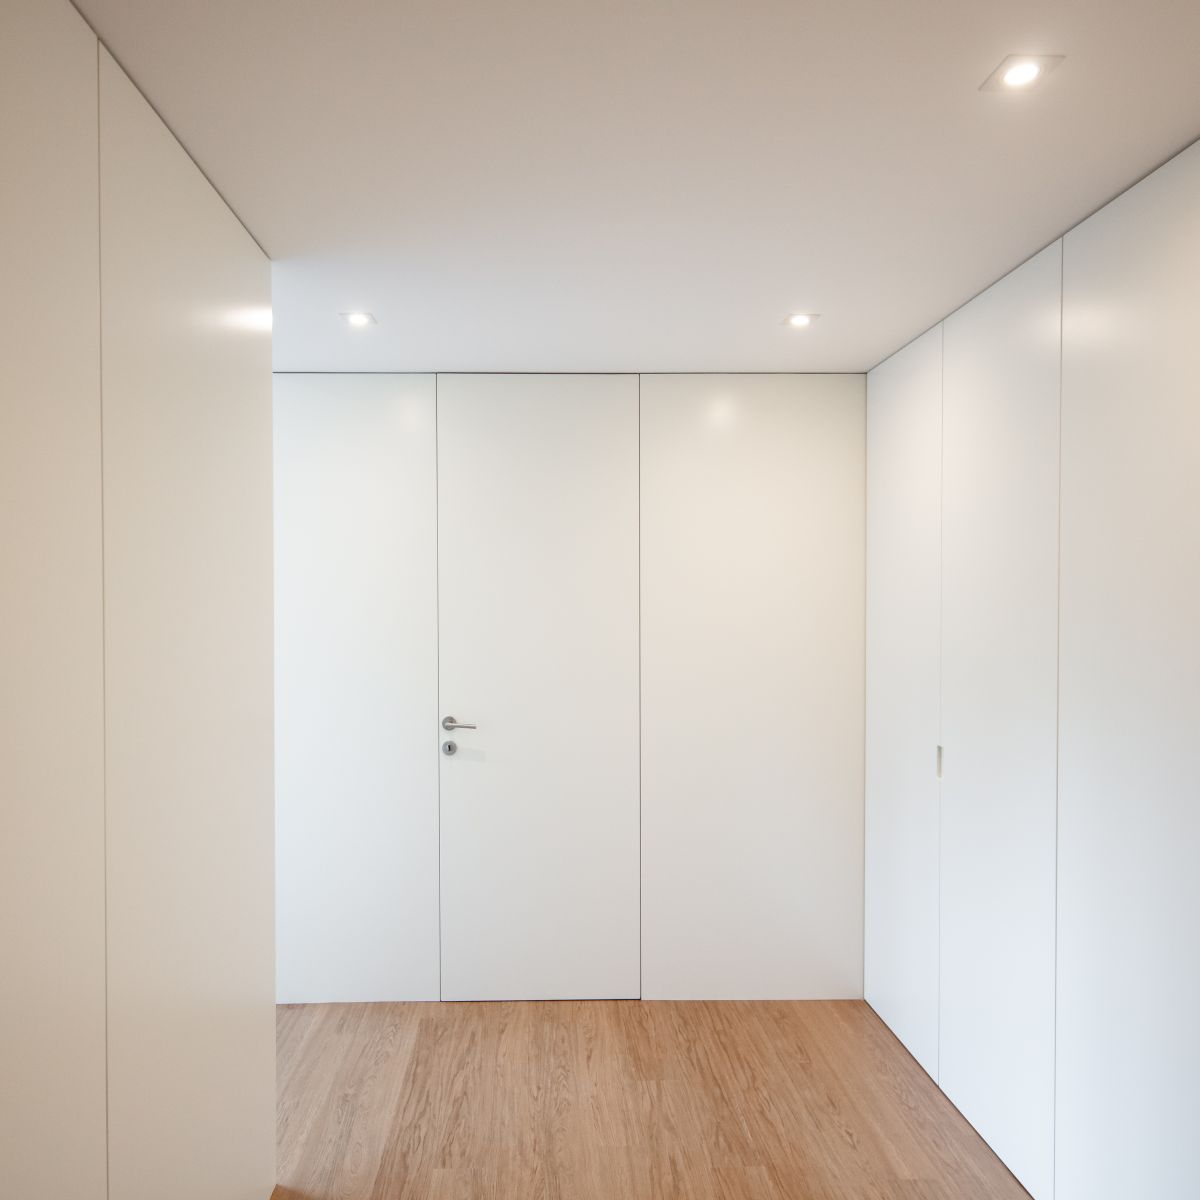 The color palette is very simple, being limited to neutral white and natural wood surfaces